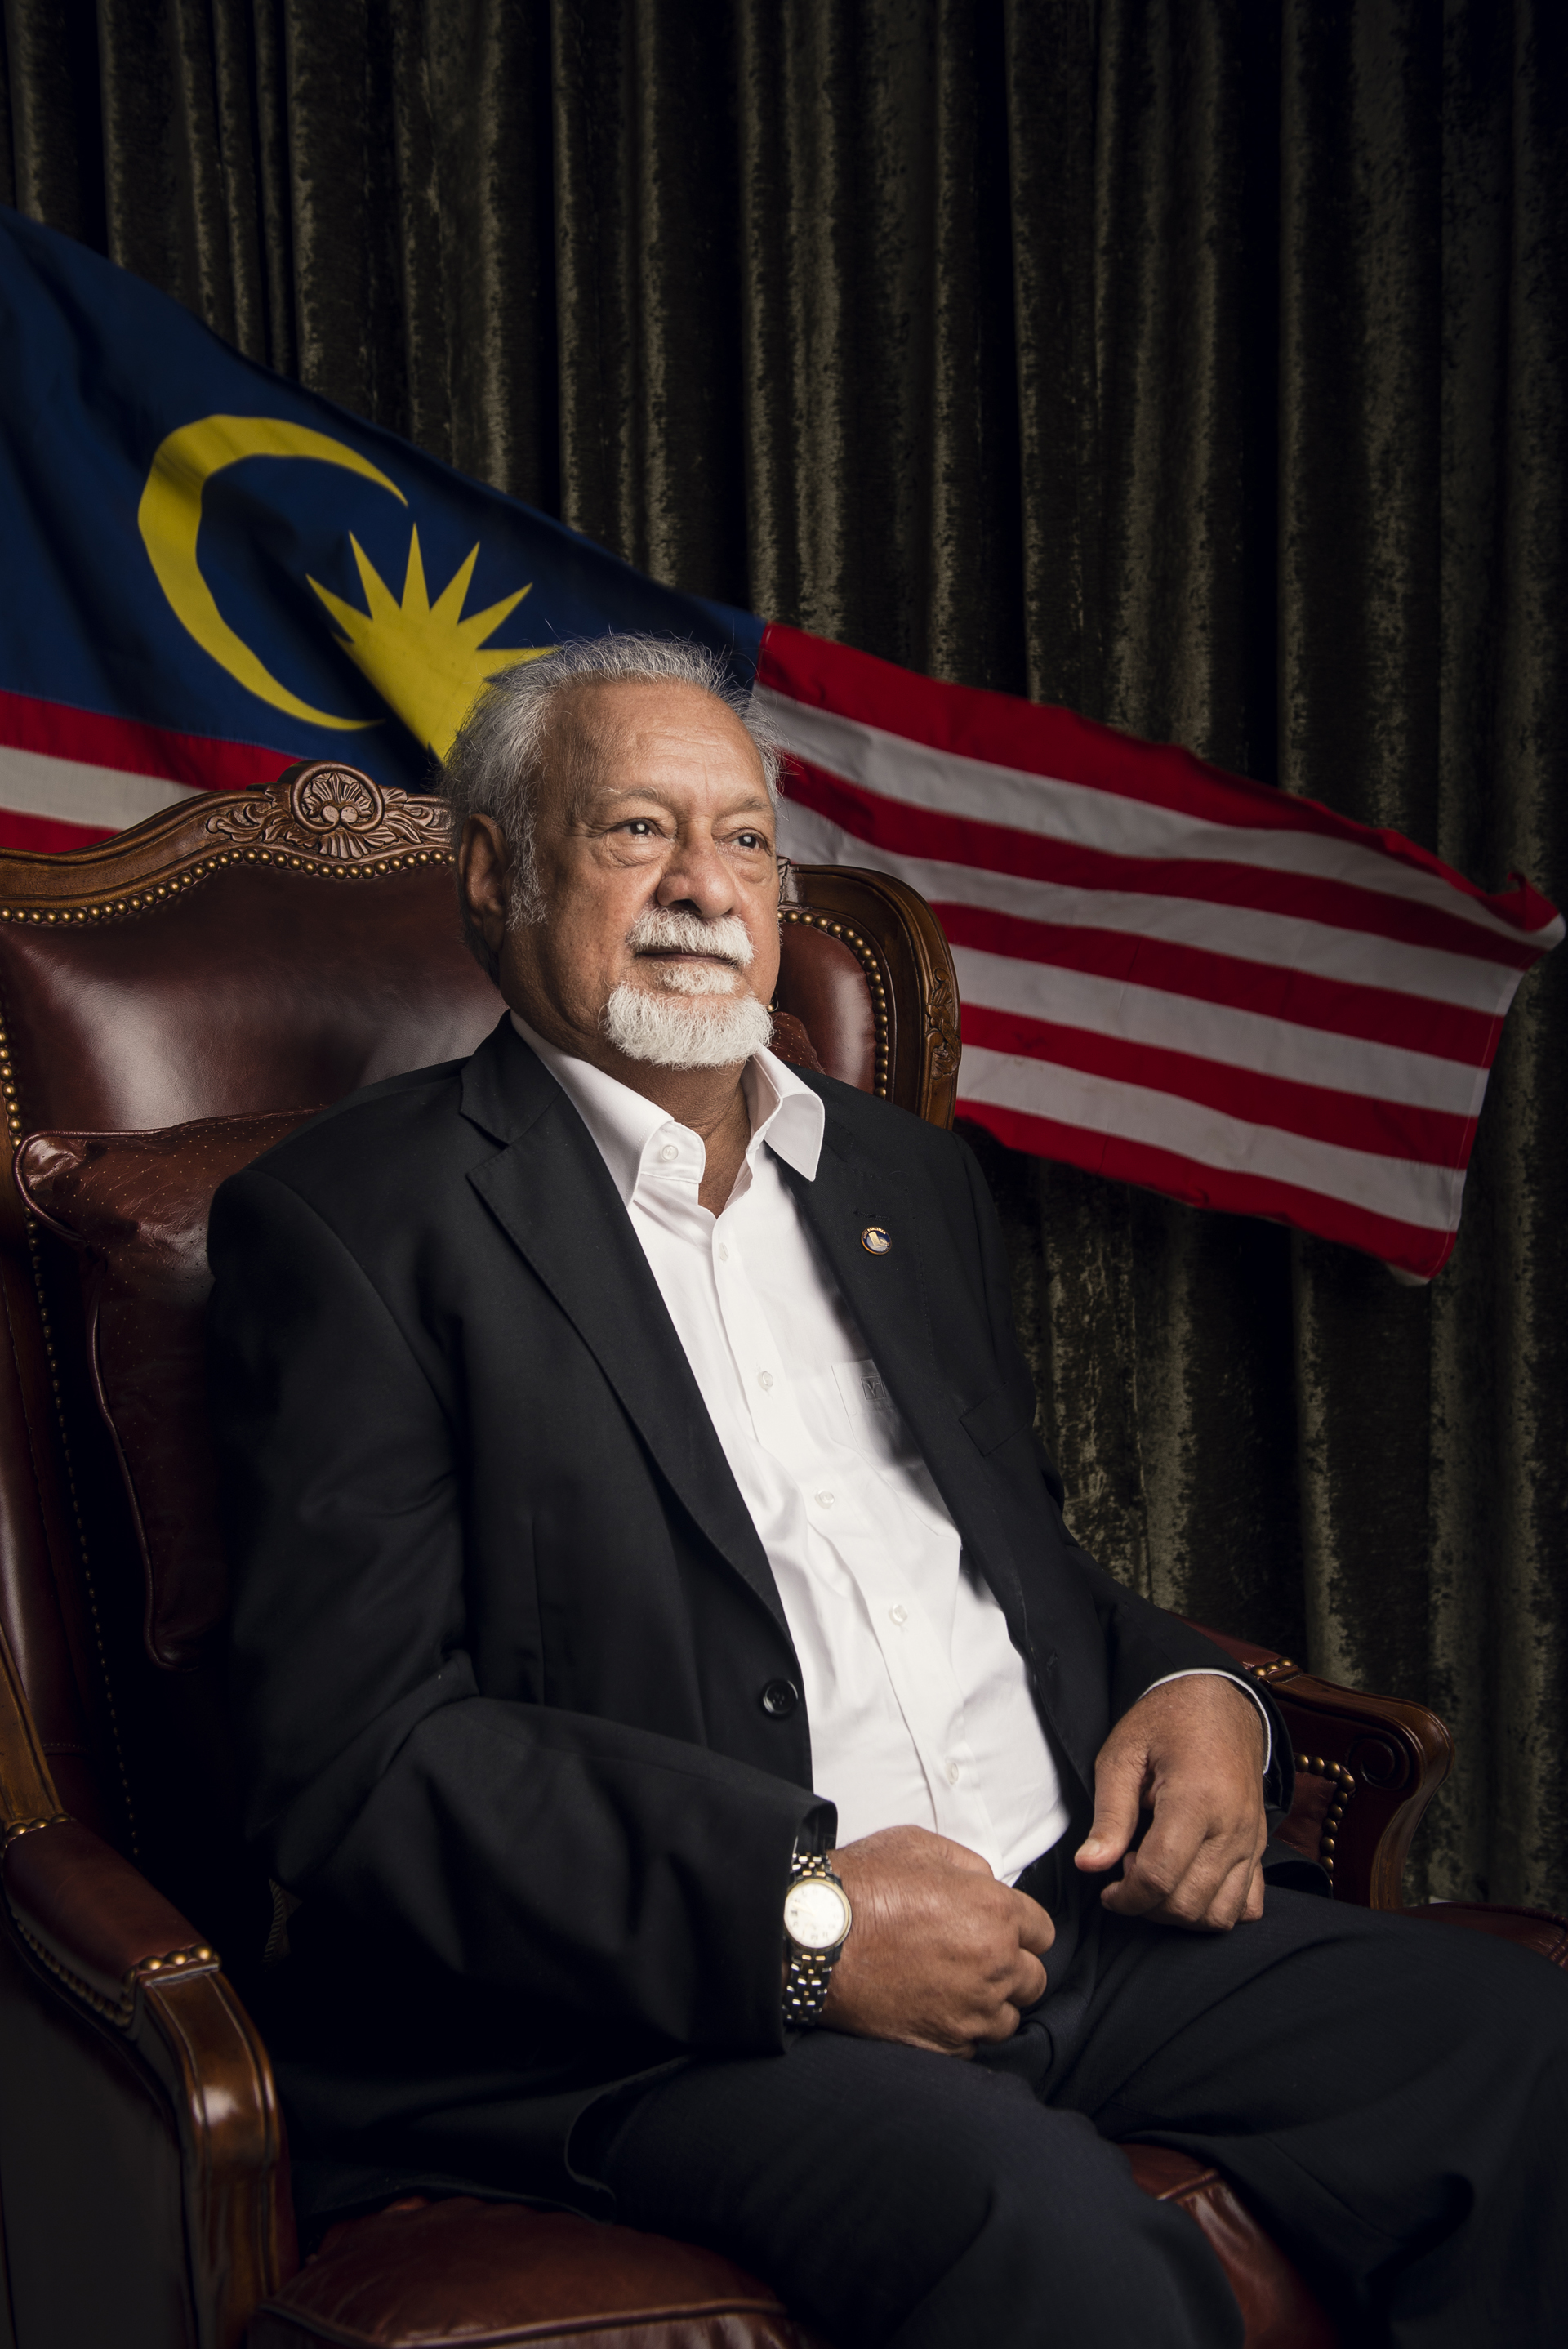 A true Malaysian, a man who stuck to his principles -- Malaysia is poorer without him.